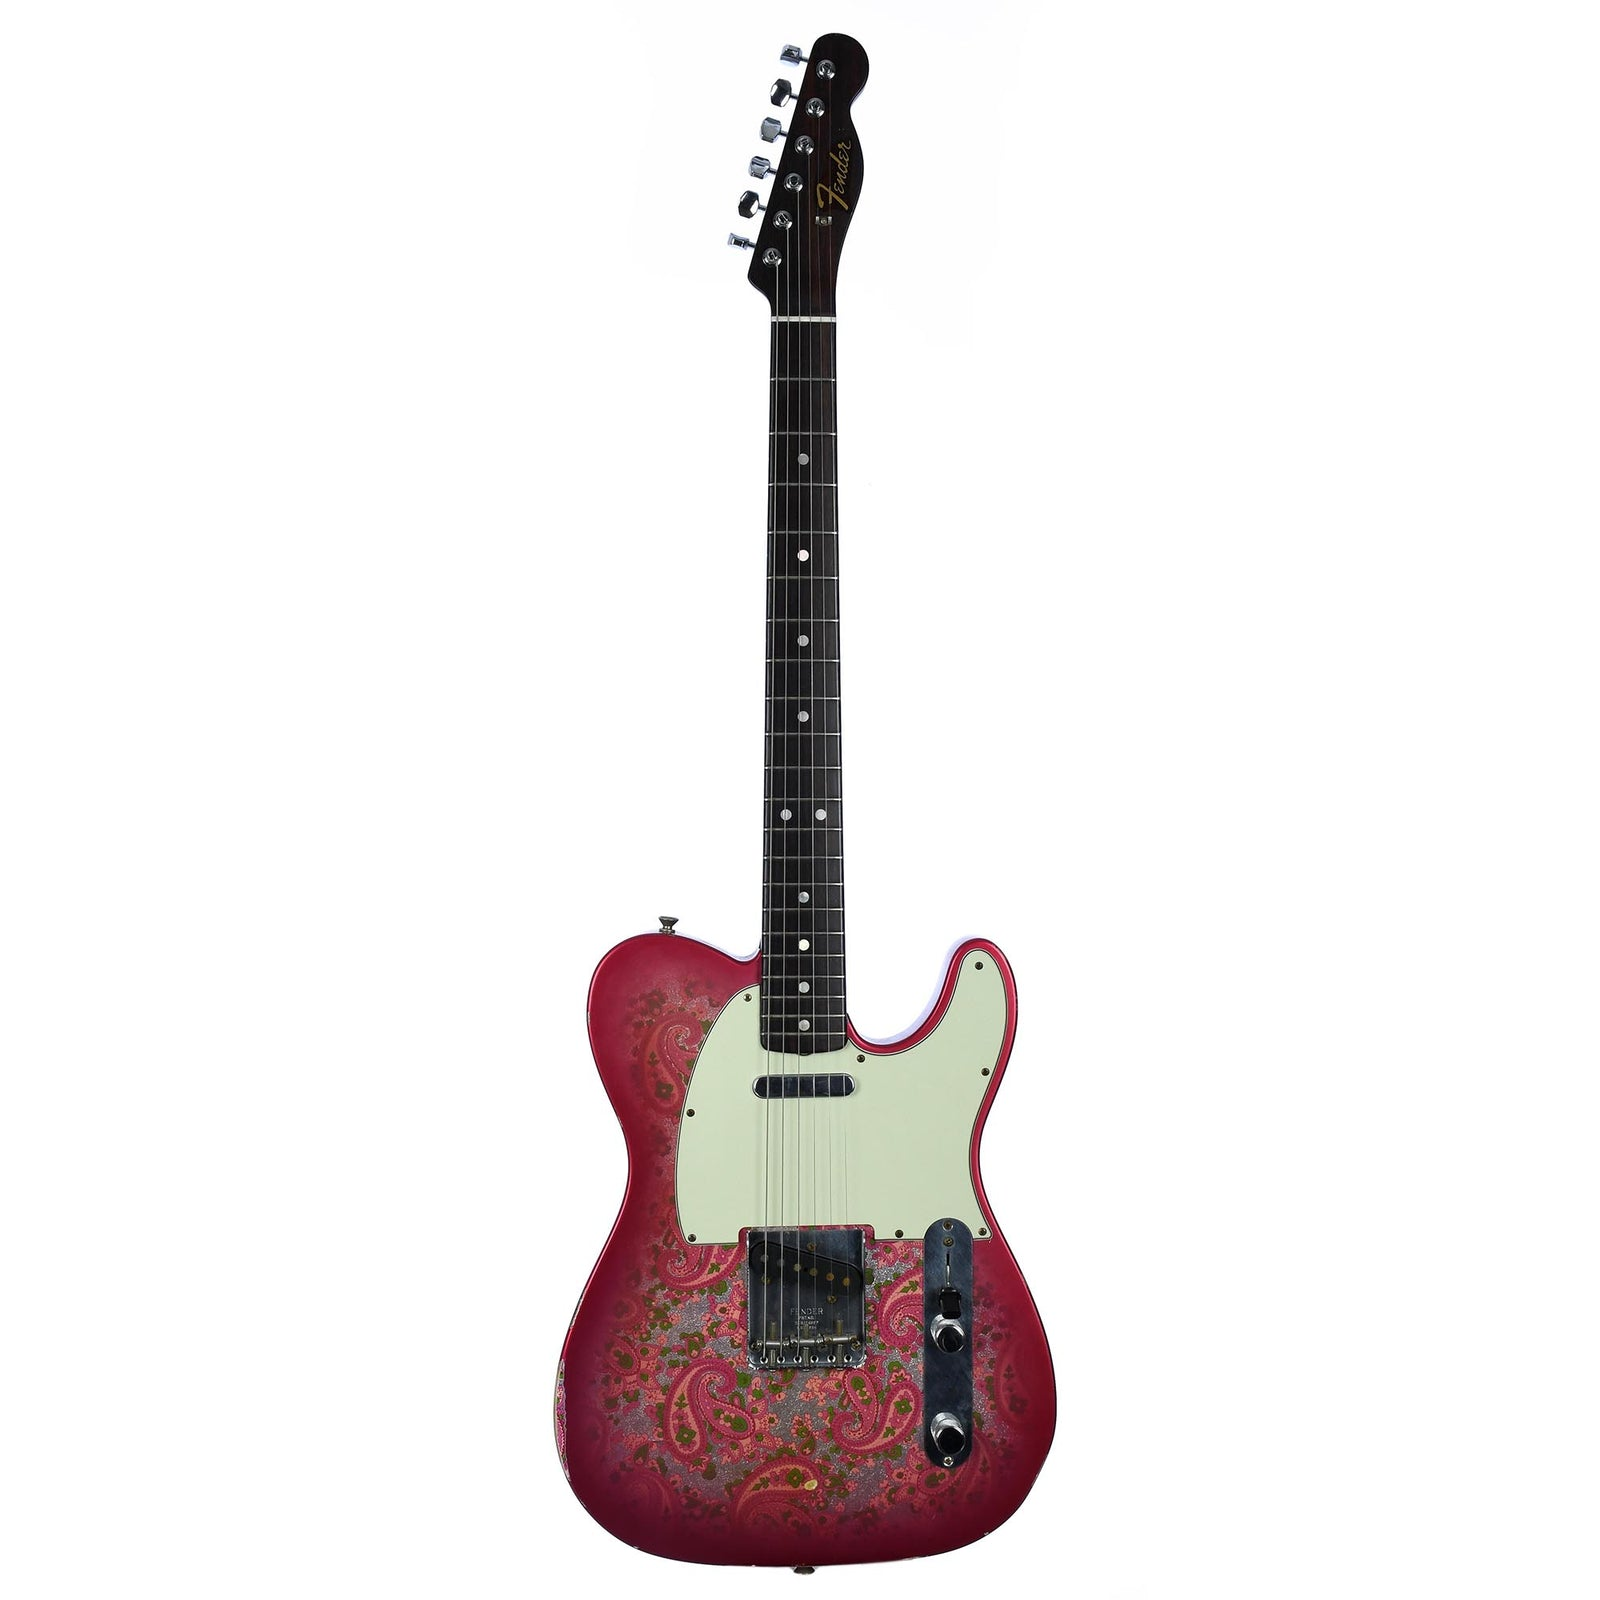 Fender Custom Shop Masterbuilt '68 Telecaster Relic - Pink Paisley - Used